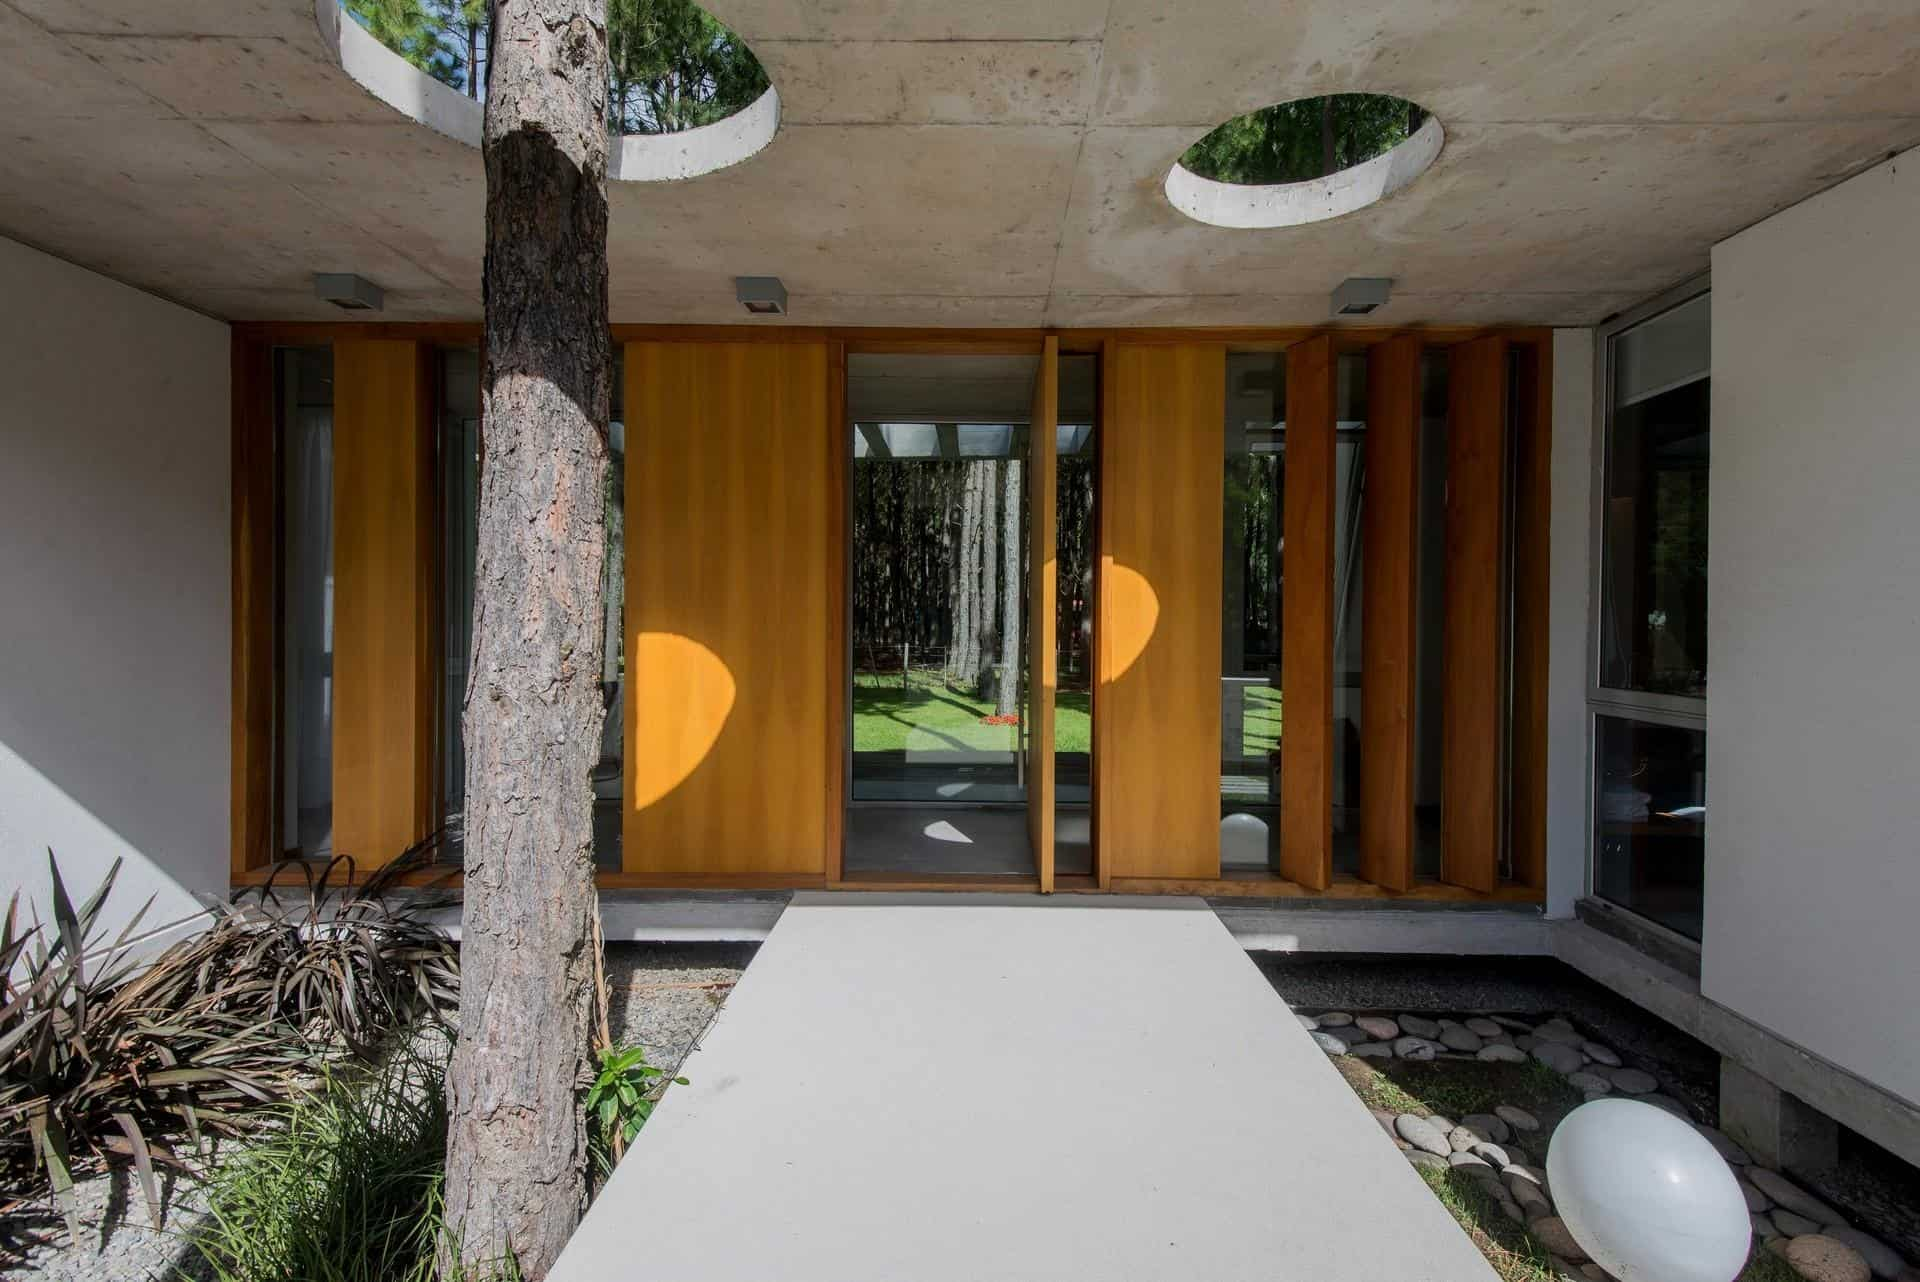 Homes Built Around Trees Are Popping Up More And More And The Following 10  Examples Are Some Of The More Creative Ways That The Designers Have  Incorporated ...